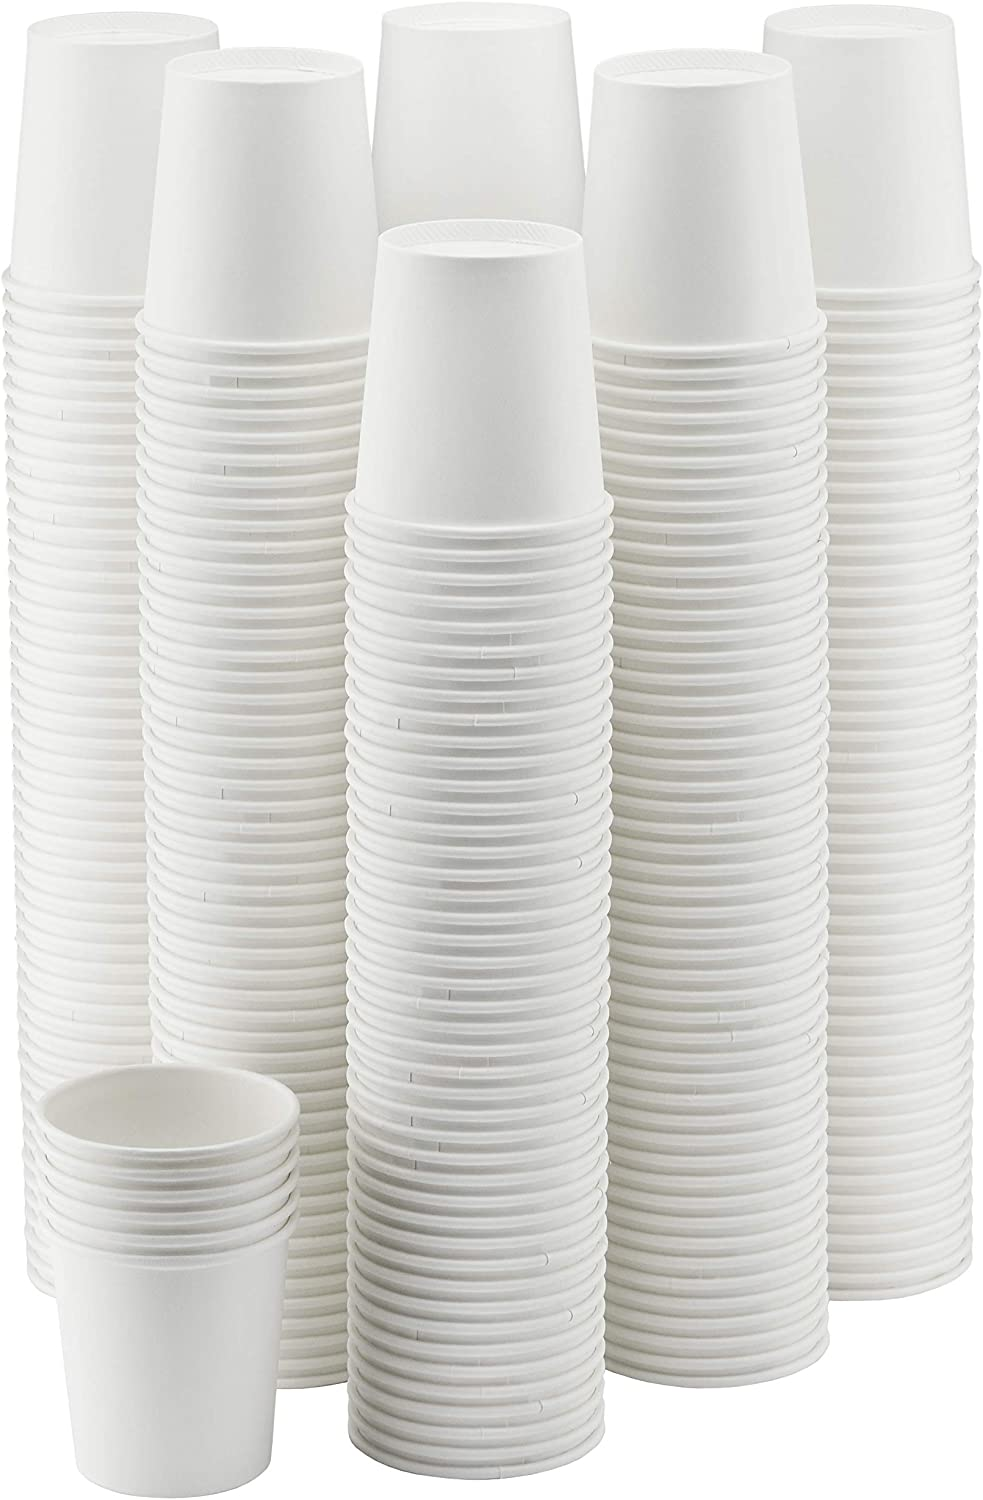 Amazon Com Nyhi 300 Pack 6 Oz White Paper Disposable Cups Hot Cold Beverage Drinking Cup For Water Juice Coffee Or Tea Ideal For Water Coolers Party Or Coffee On The